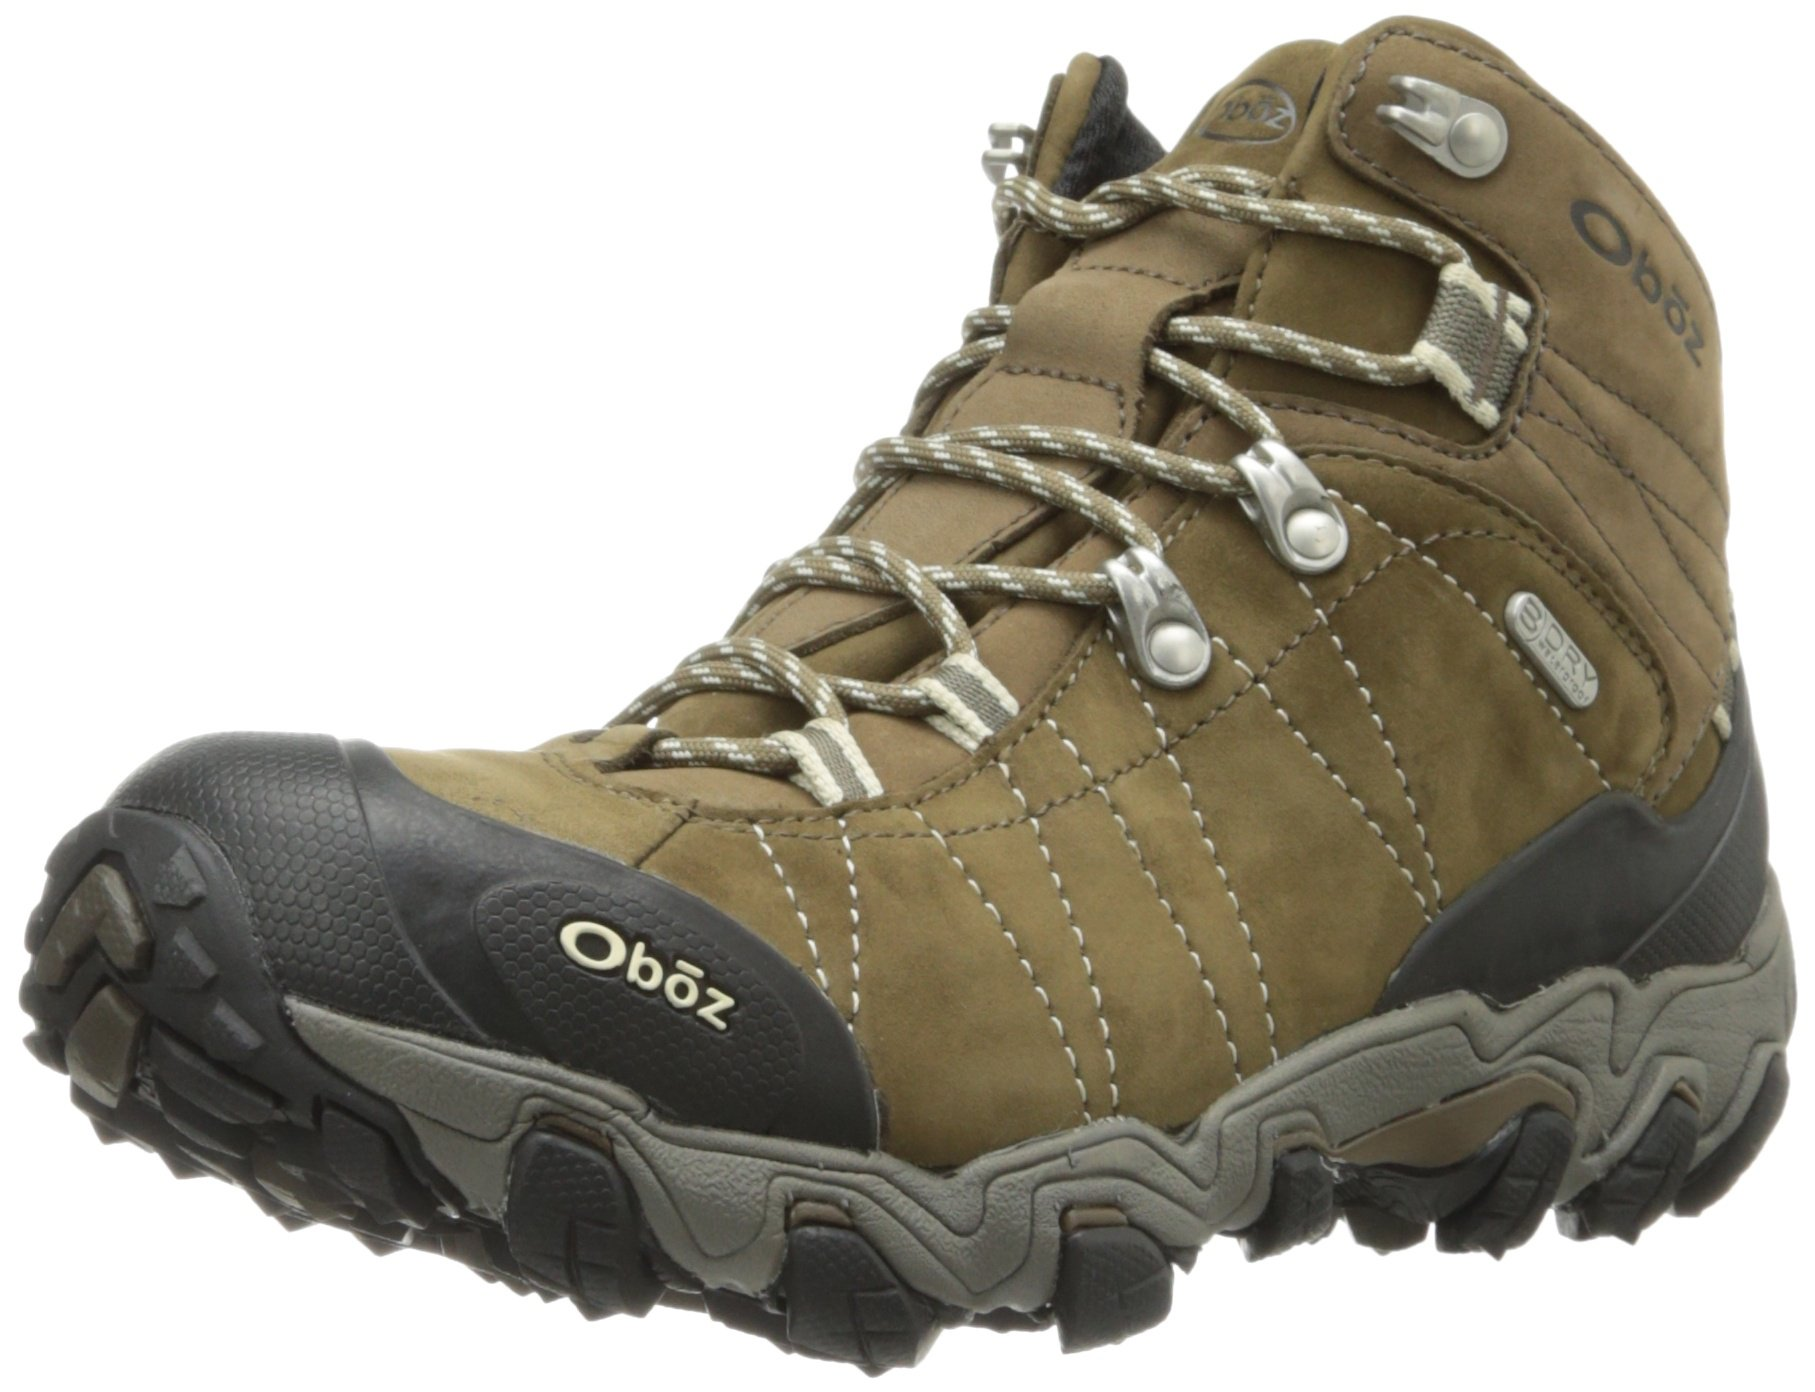 Oboz Women's Bridger Bdry Hiking Boot,Walnut,11 M US